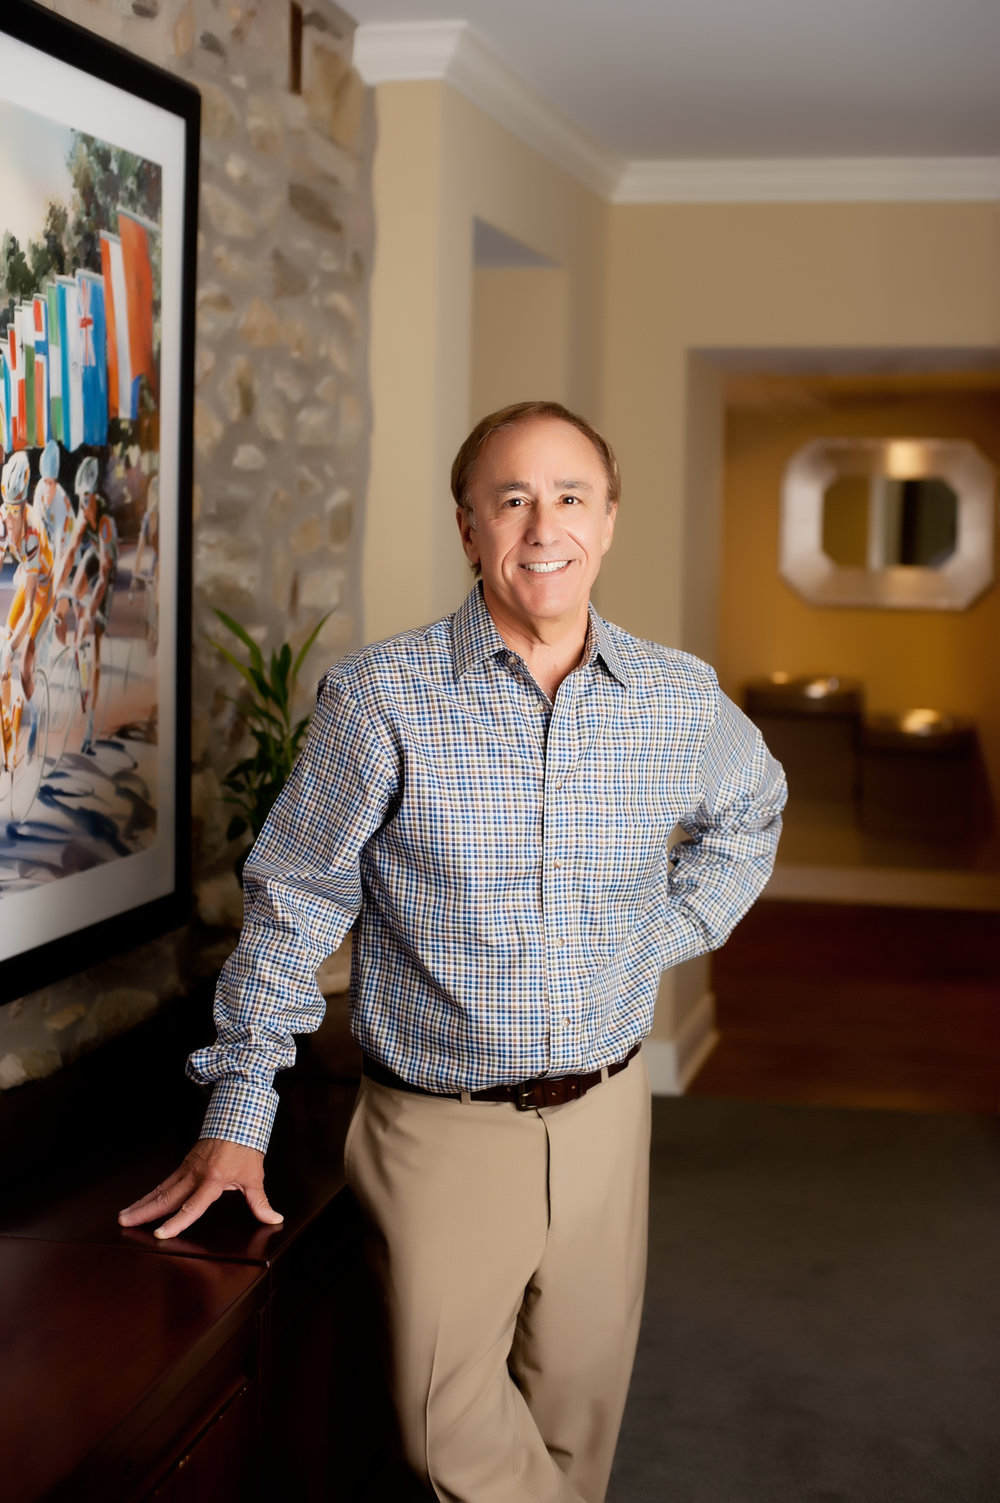 Bob Rubin, Founder - Founder of Marathon Mortgage. Bob brings more than 40 years of experience to the company. Bob's vision and leadership has driven Marathon Mortgage to the success it has enjoyed through the last 21 years.NMLS 133545Bob@marathonhomeloans.com